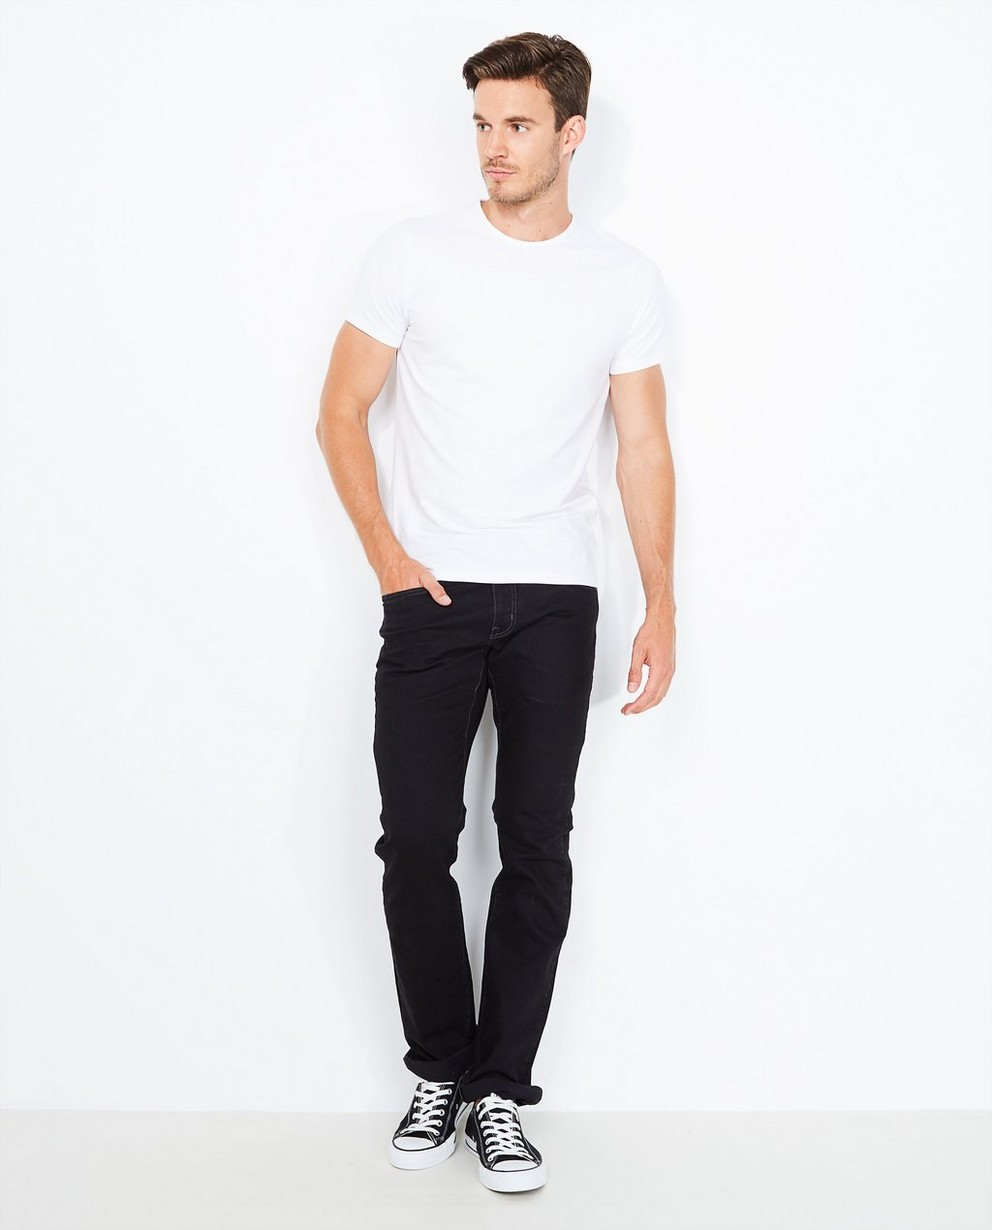 Jeans noir en coton bio - fitted straight - Tim Moore